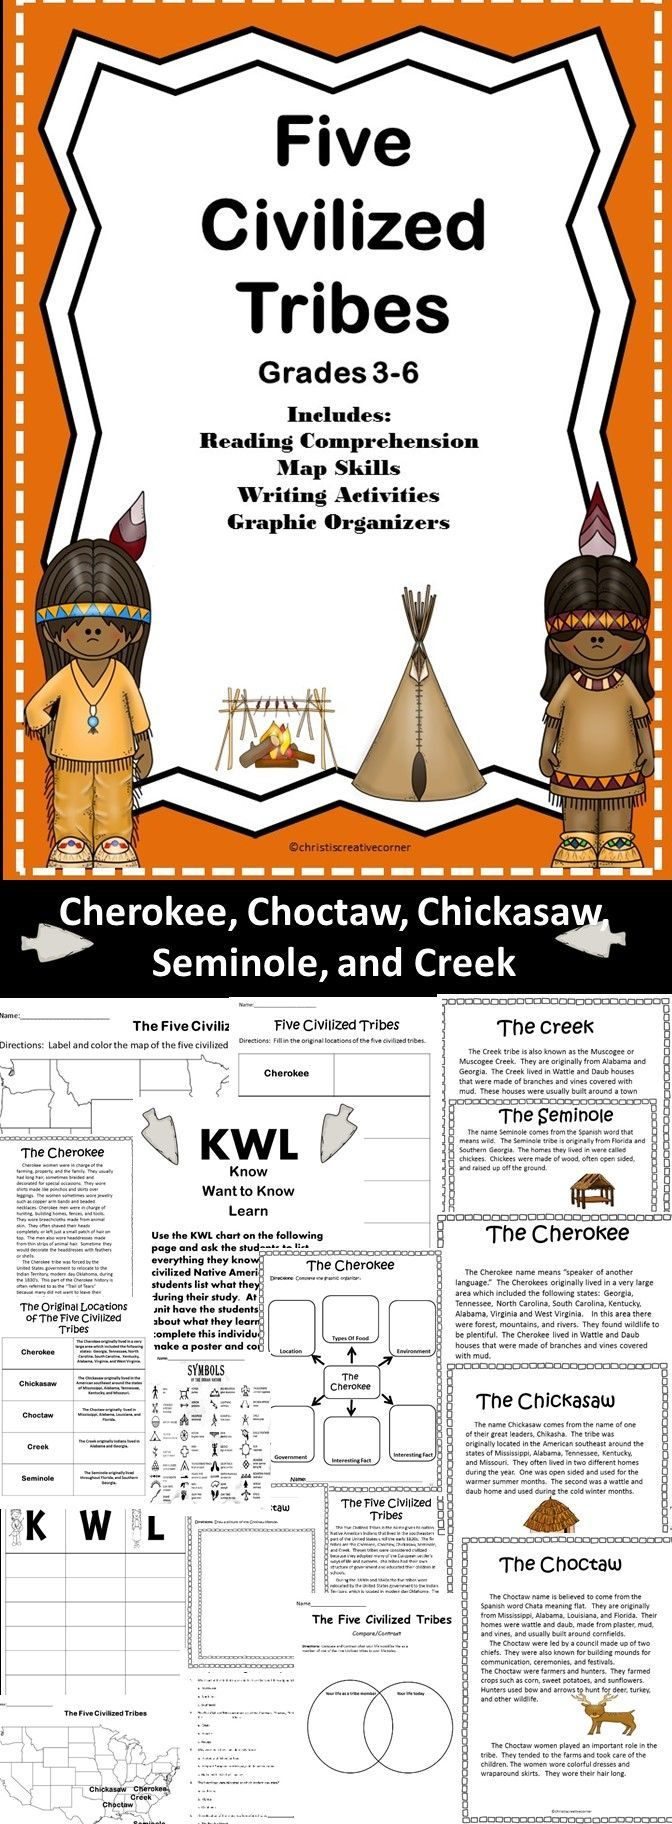 Five Civilized Tribe is a brief history of the Cherokee, Choctaw, Chickasaw, Seminole and the Creek tribes. This product includes reading comprehension, map skills, writing activities, and graphic organizers, and MORE!